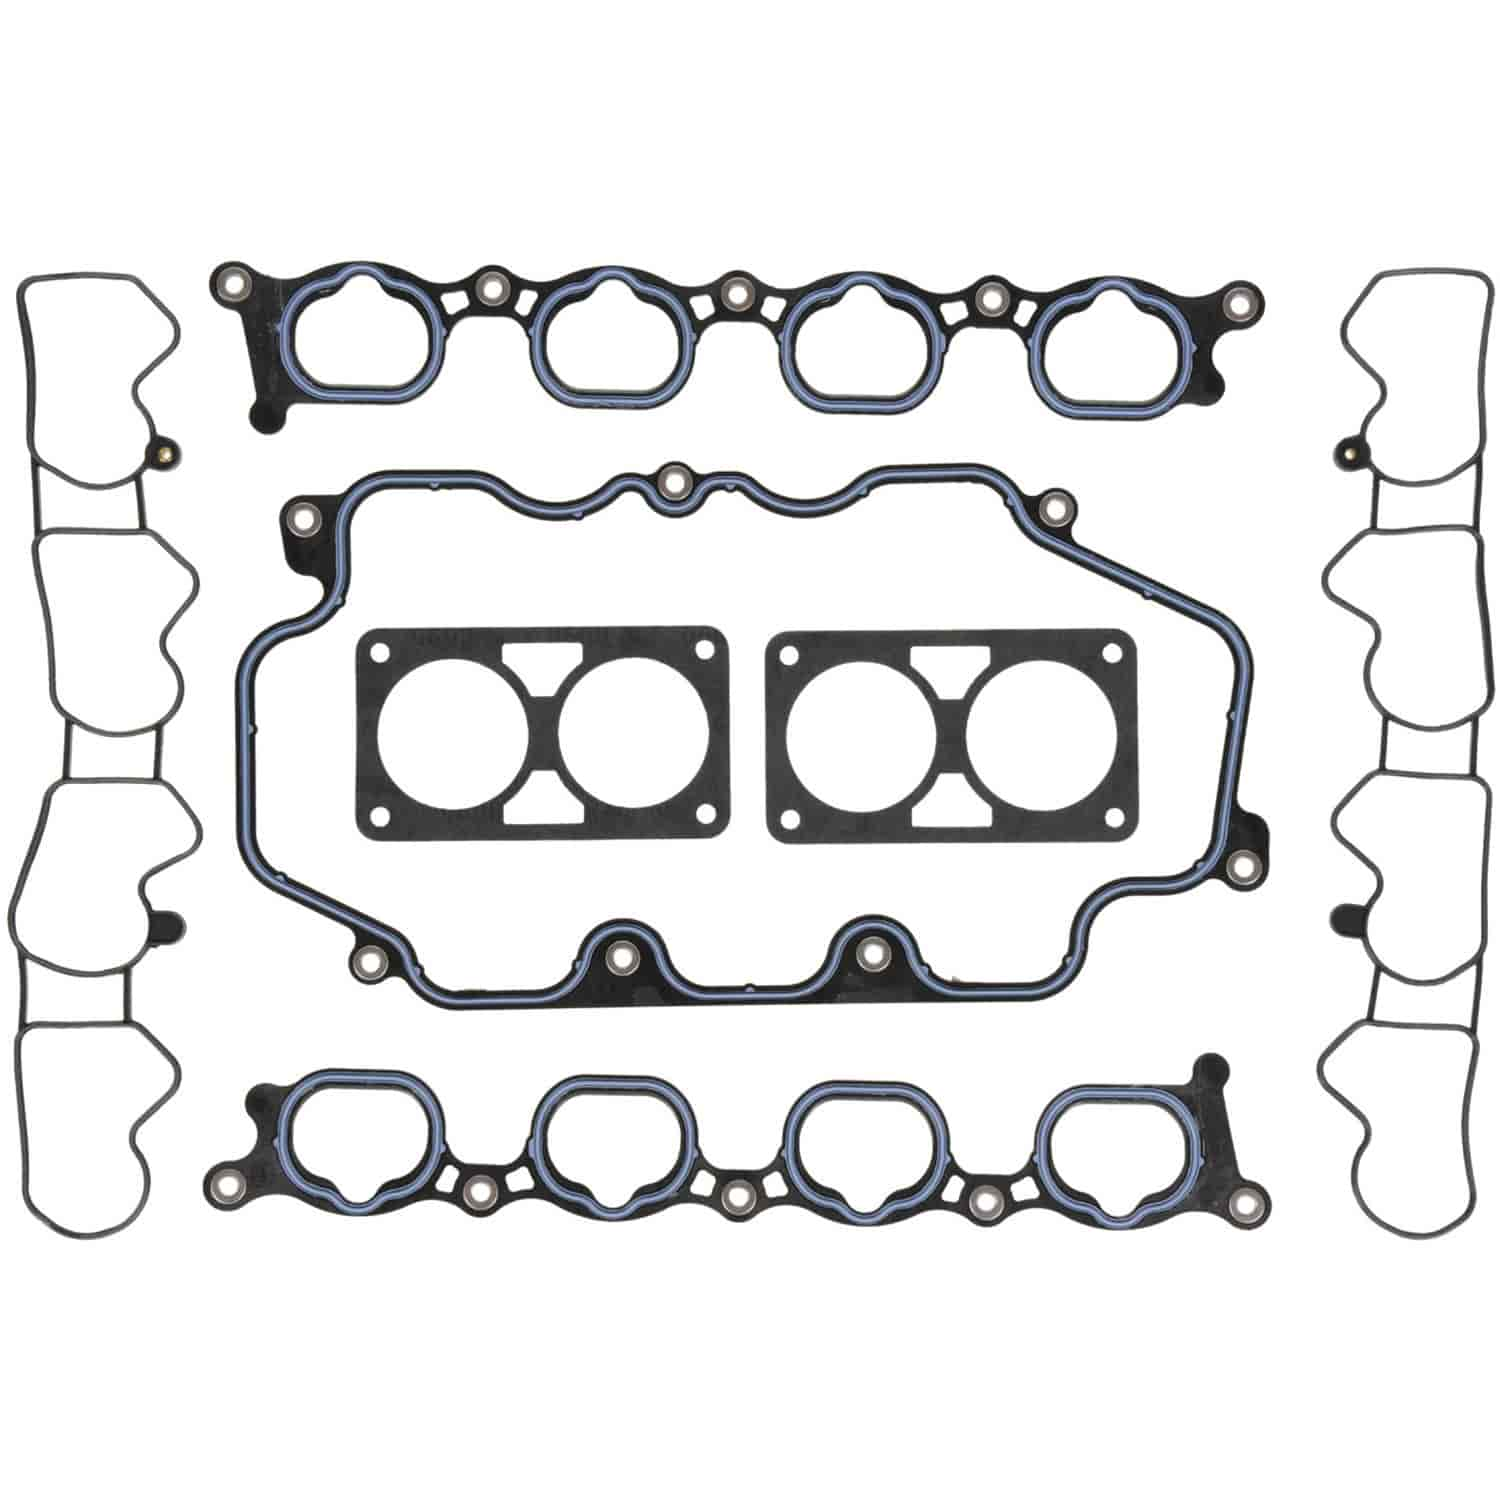 Clevite Mahle Ms Intake Manifold Gasket Set Ford Mustang Mach 1 Modular V8 4 6l